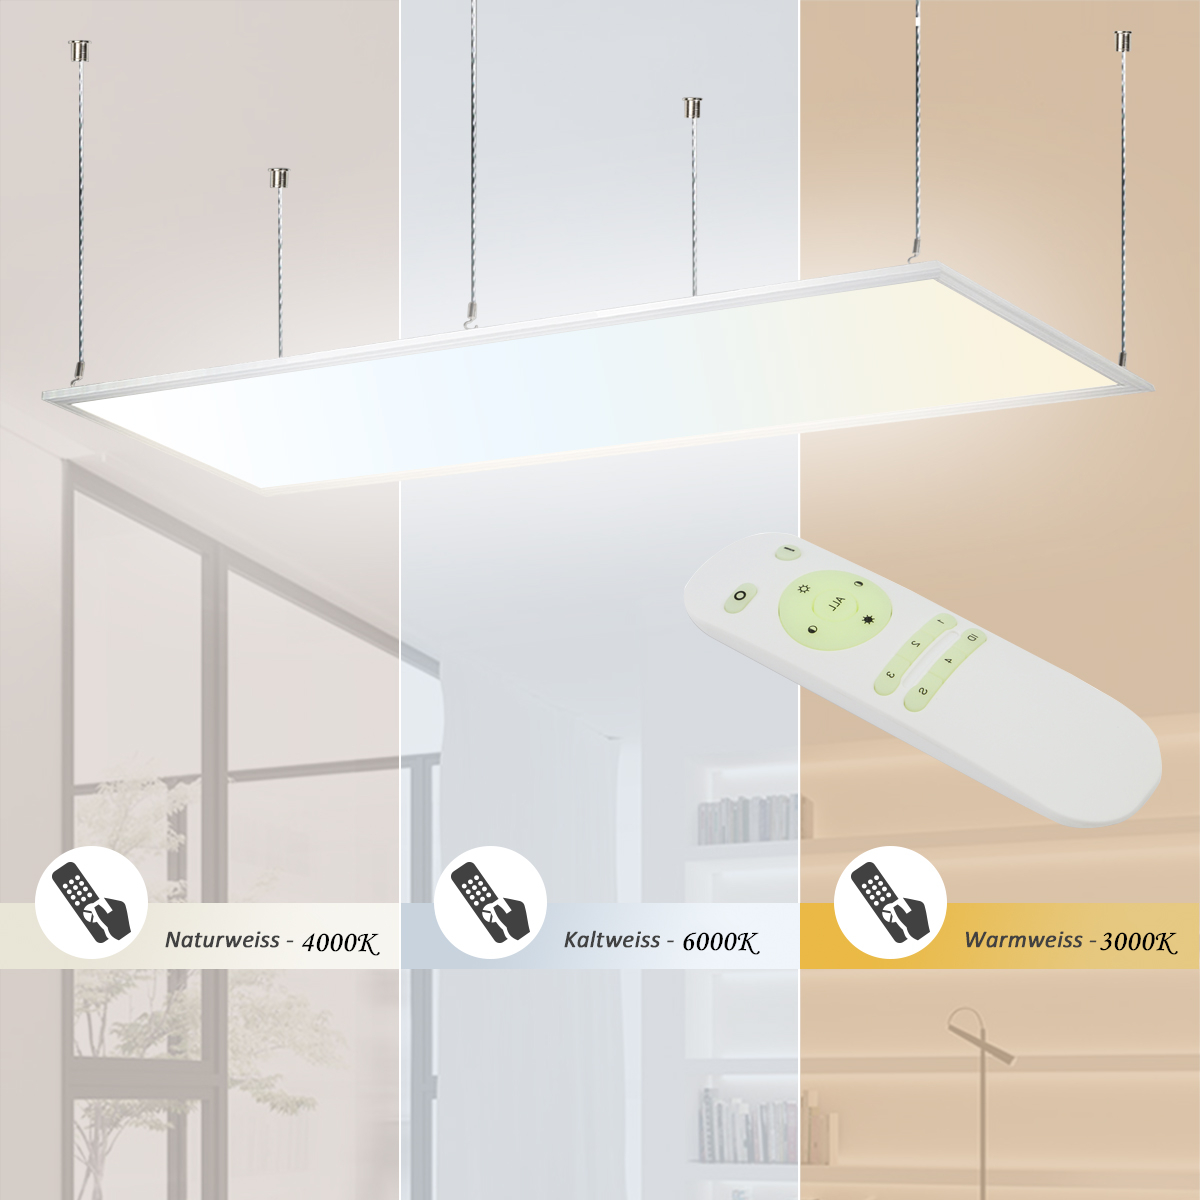 led deckenlampe dimmbar 120x30 deckenleuchte panel 2700k 6500k mit fernbedienung ebay. Black Bedroom Furniture Sets. Home Design Ideas